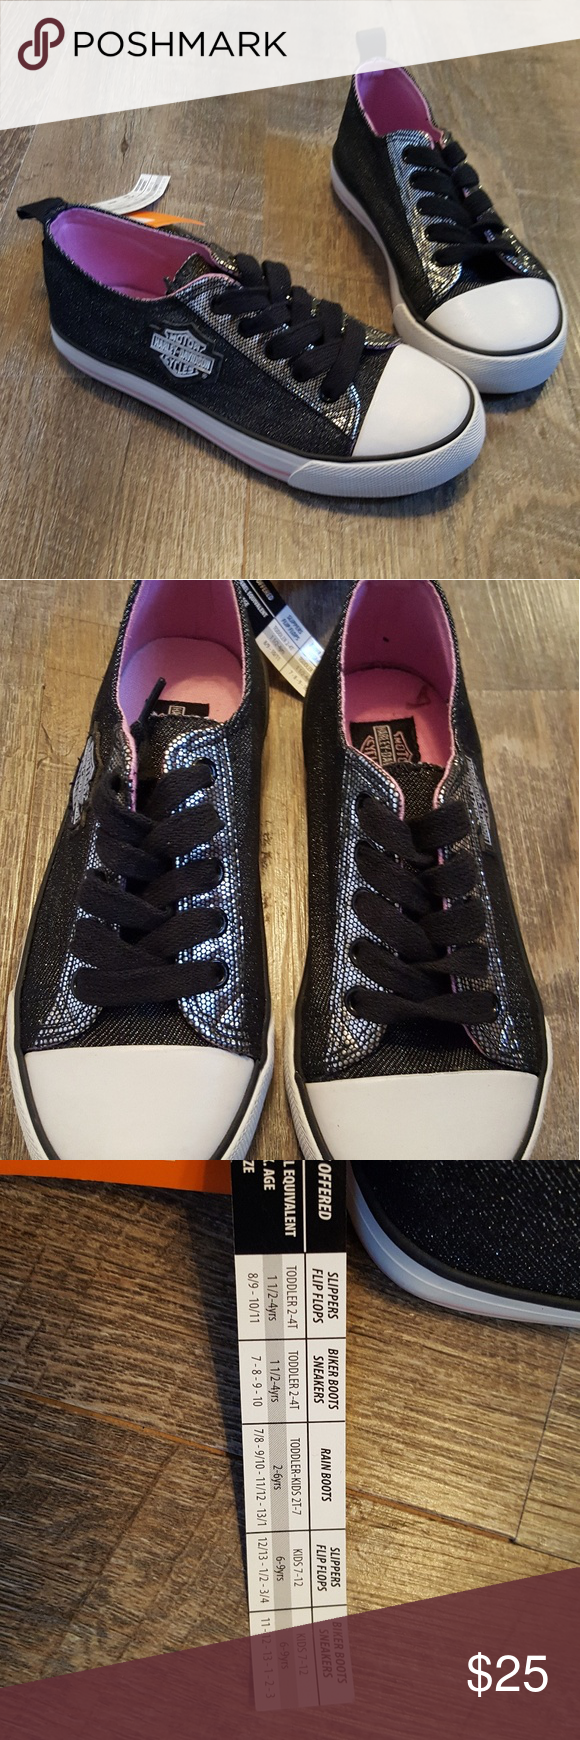 b9b342aeae8a Black White with pink interior Size  1 New with tags Harley-Davidson Shoes  Sneakers